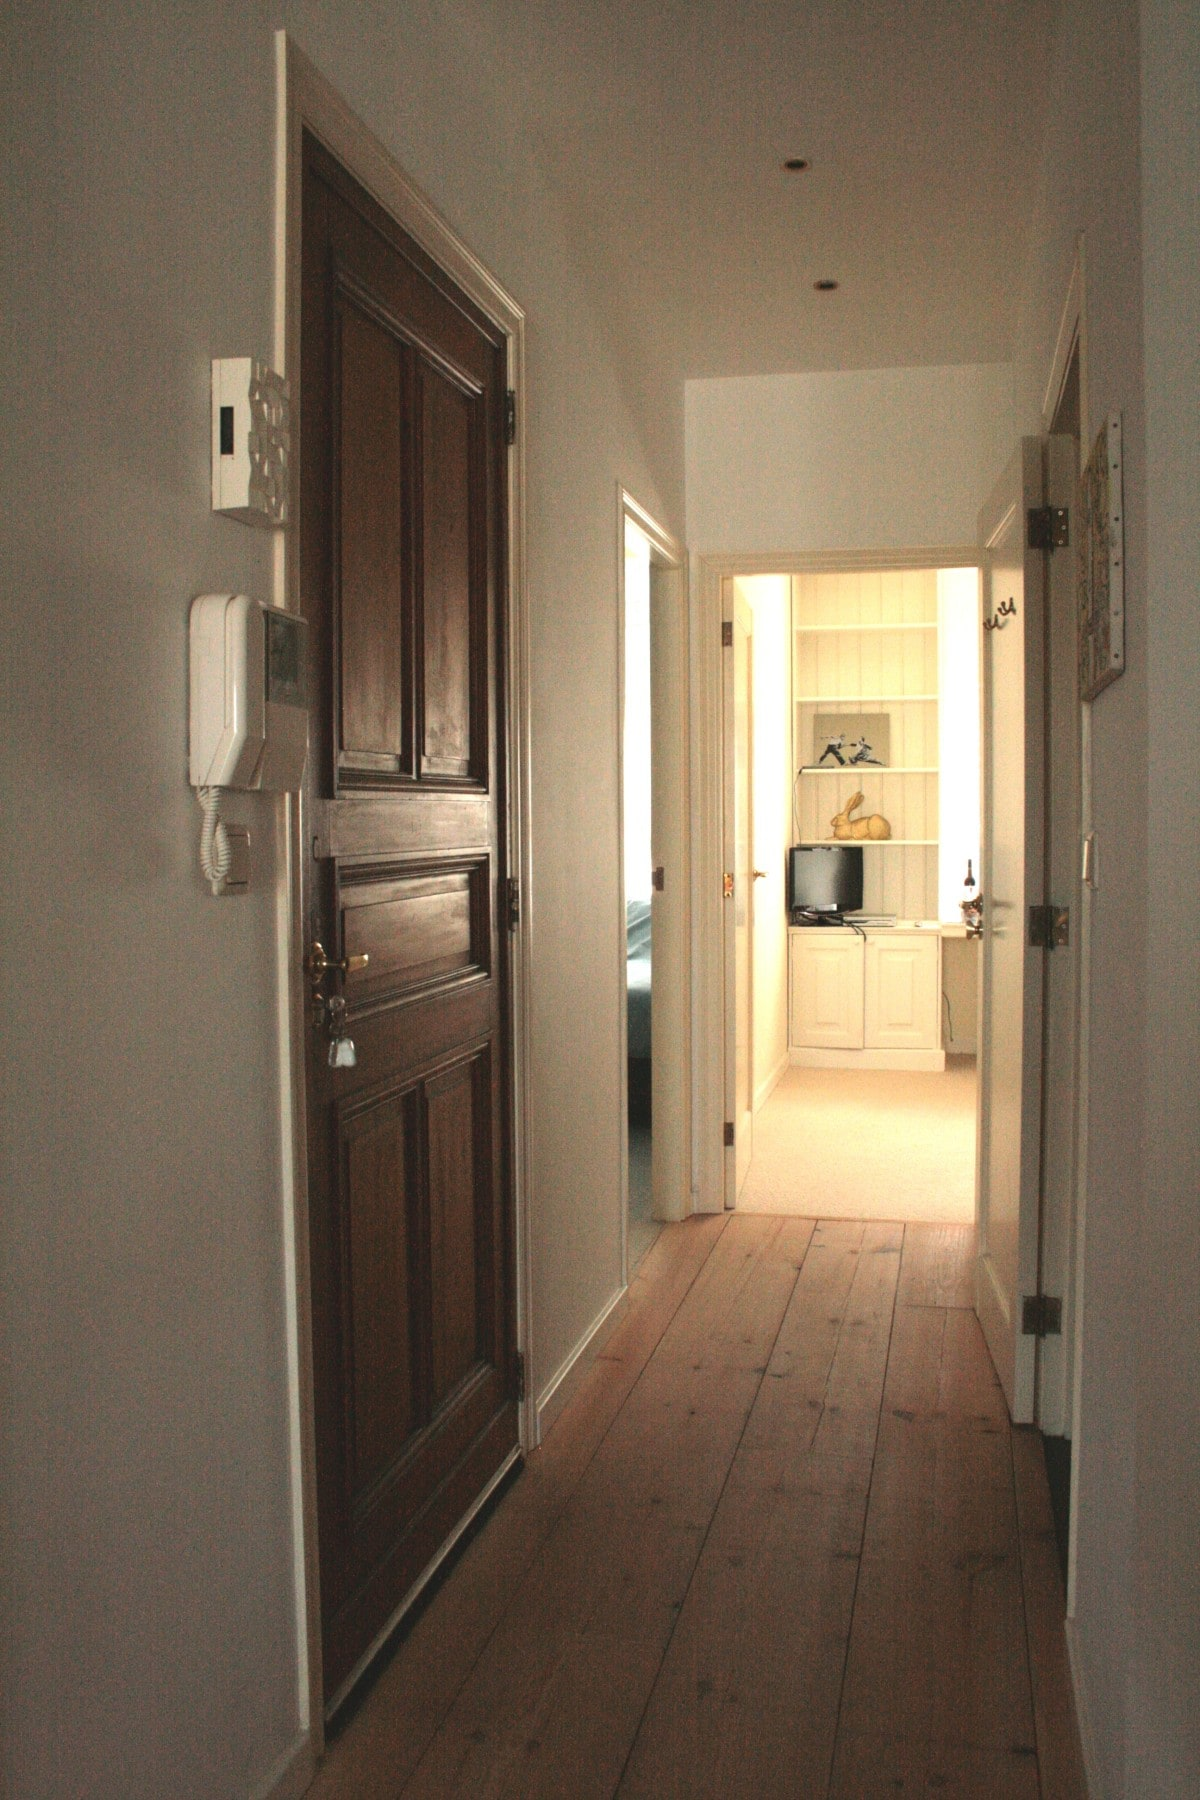 Private entrance so you can enjoy your apartment